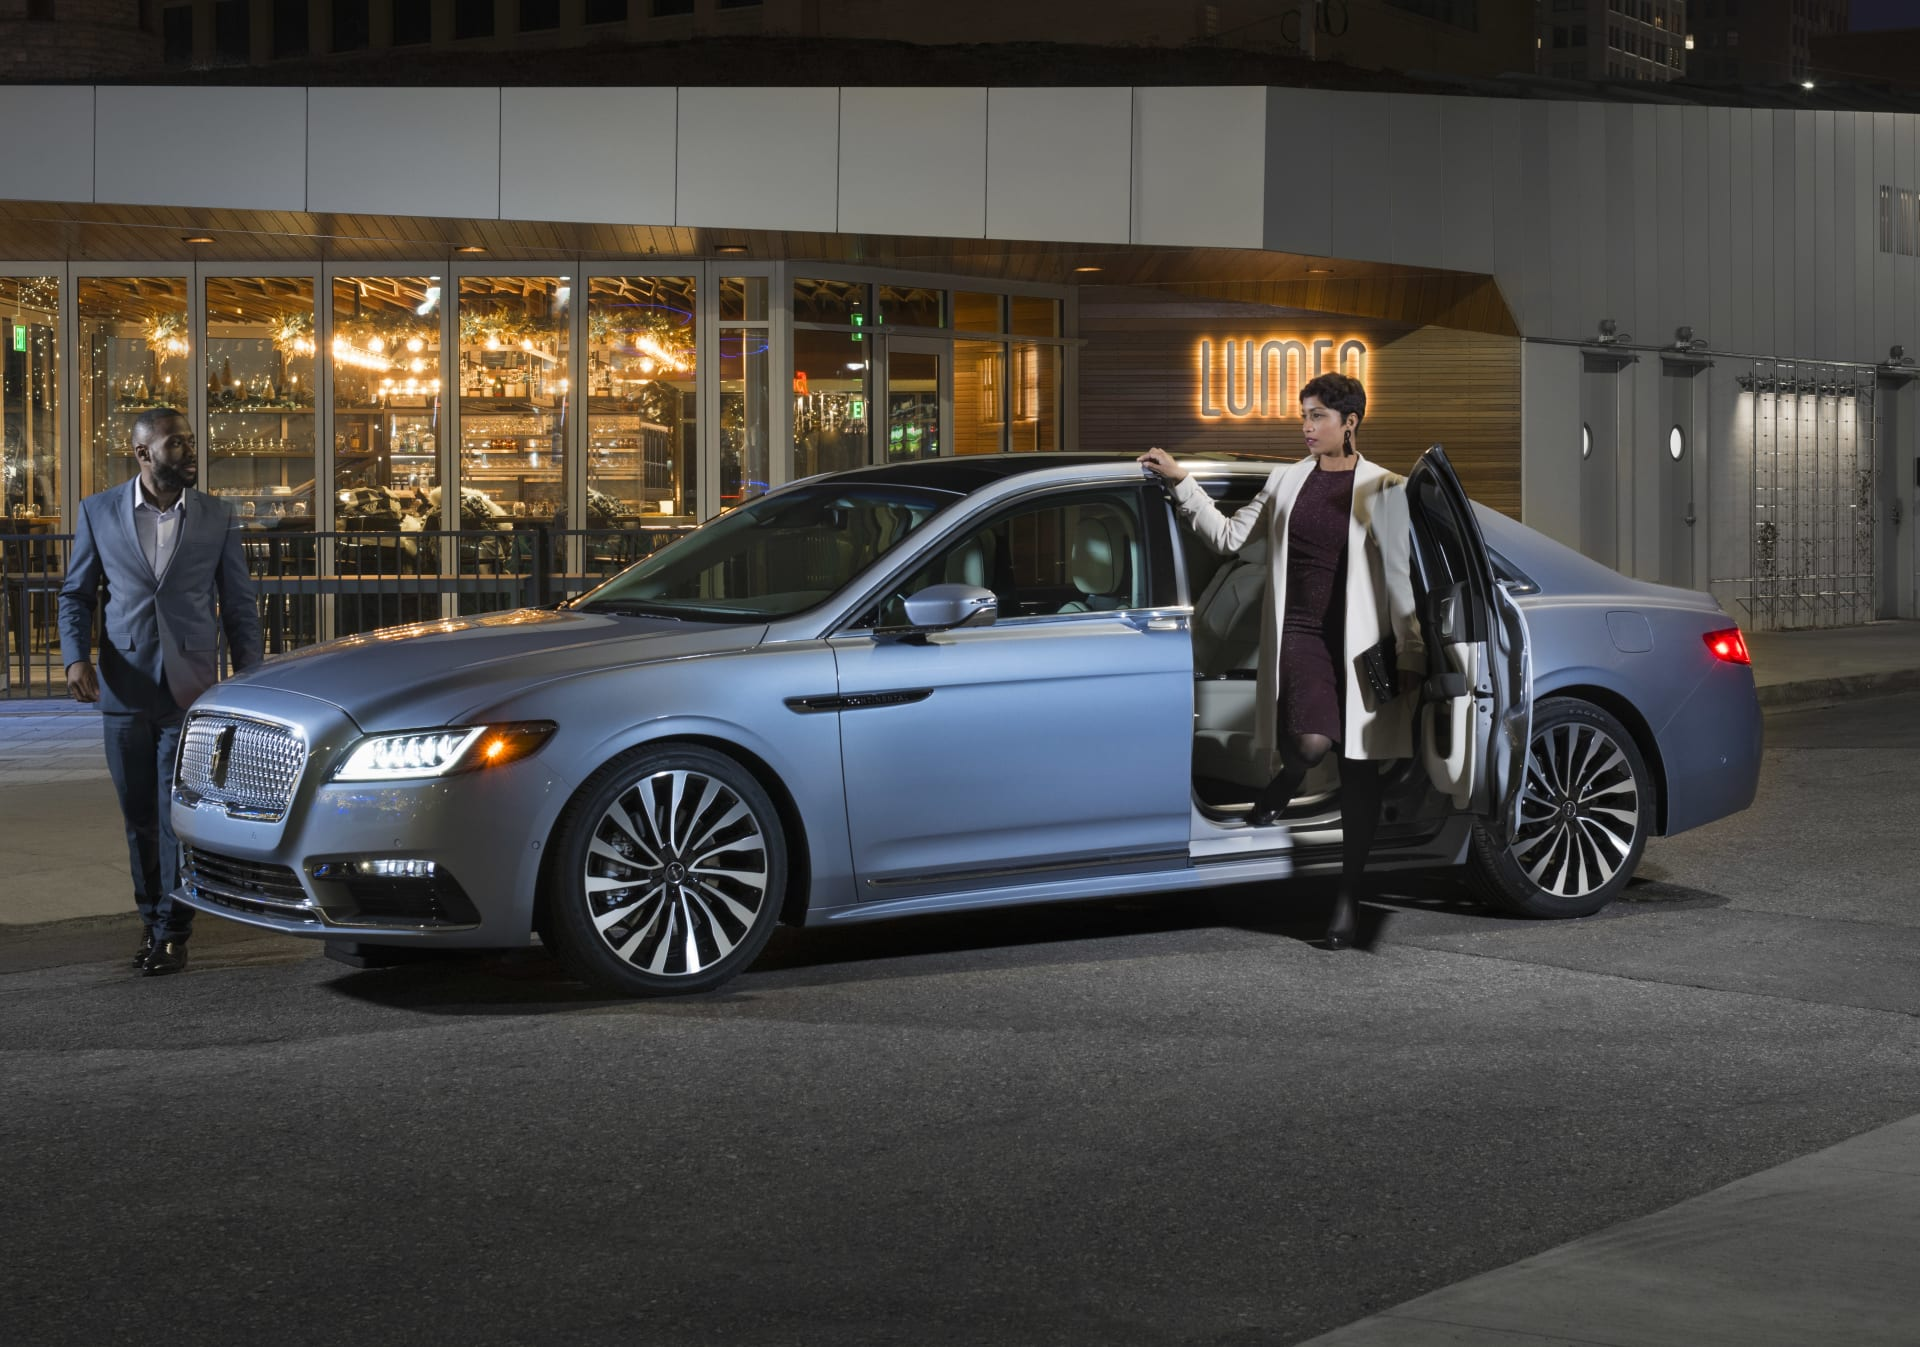 Lincoln Continental Coach Door Edition: Some Folks Call 'Em Suicide Doors | News | Cars.com